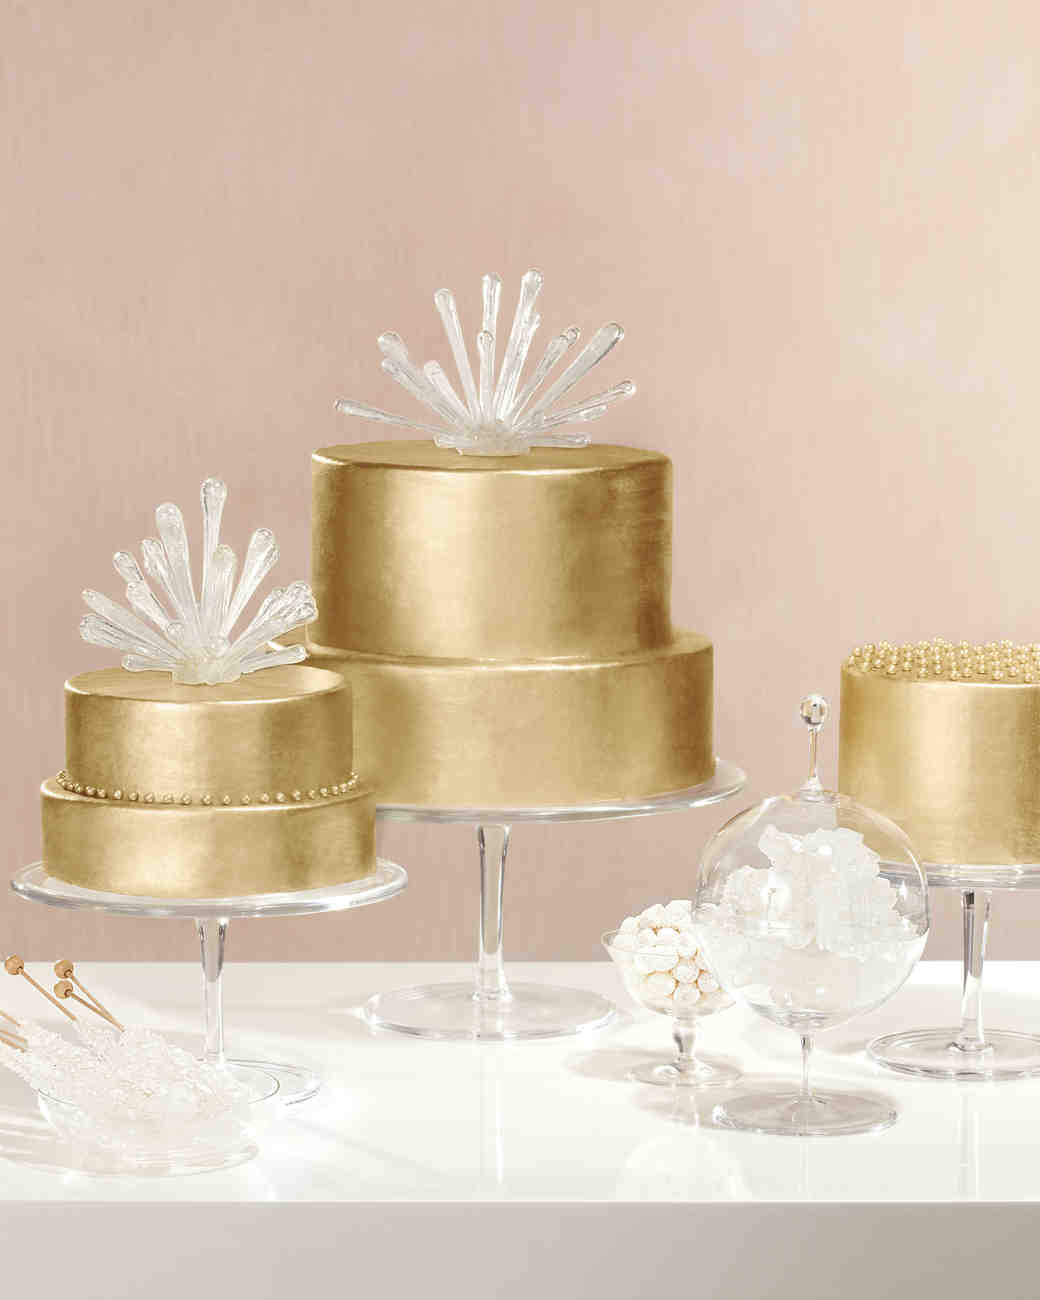 Gold Wedding Cake Decorations: Dazzling And Delicious: How To Add Sparkle To Your Cake